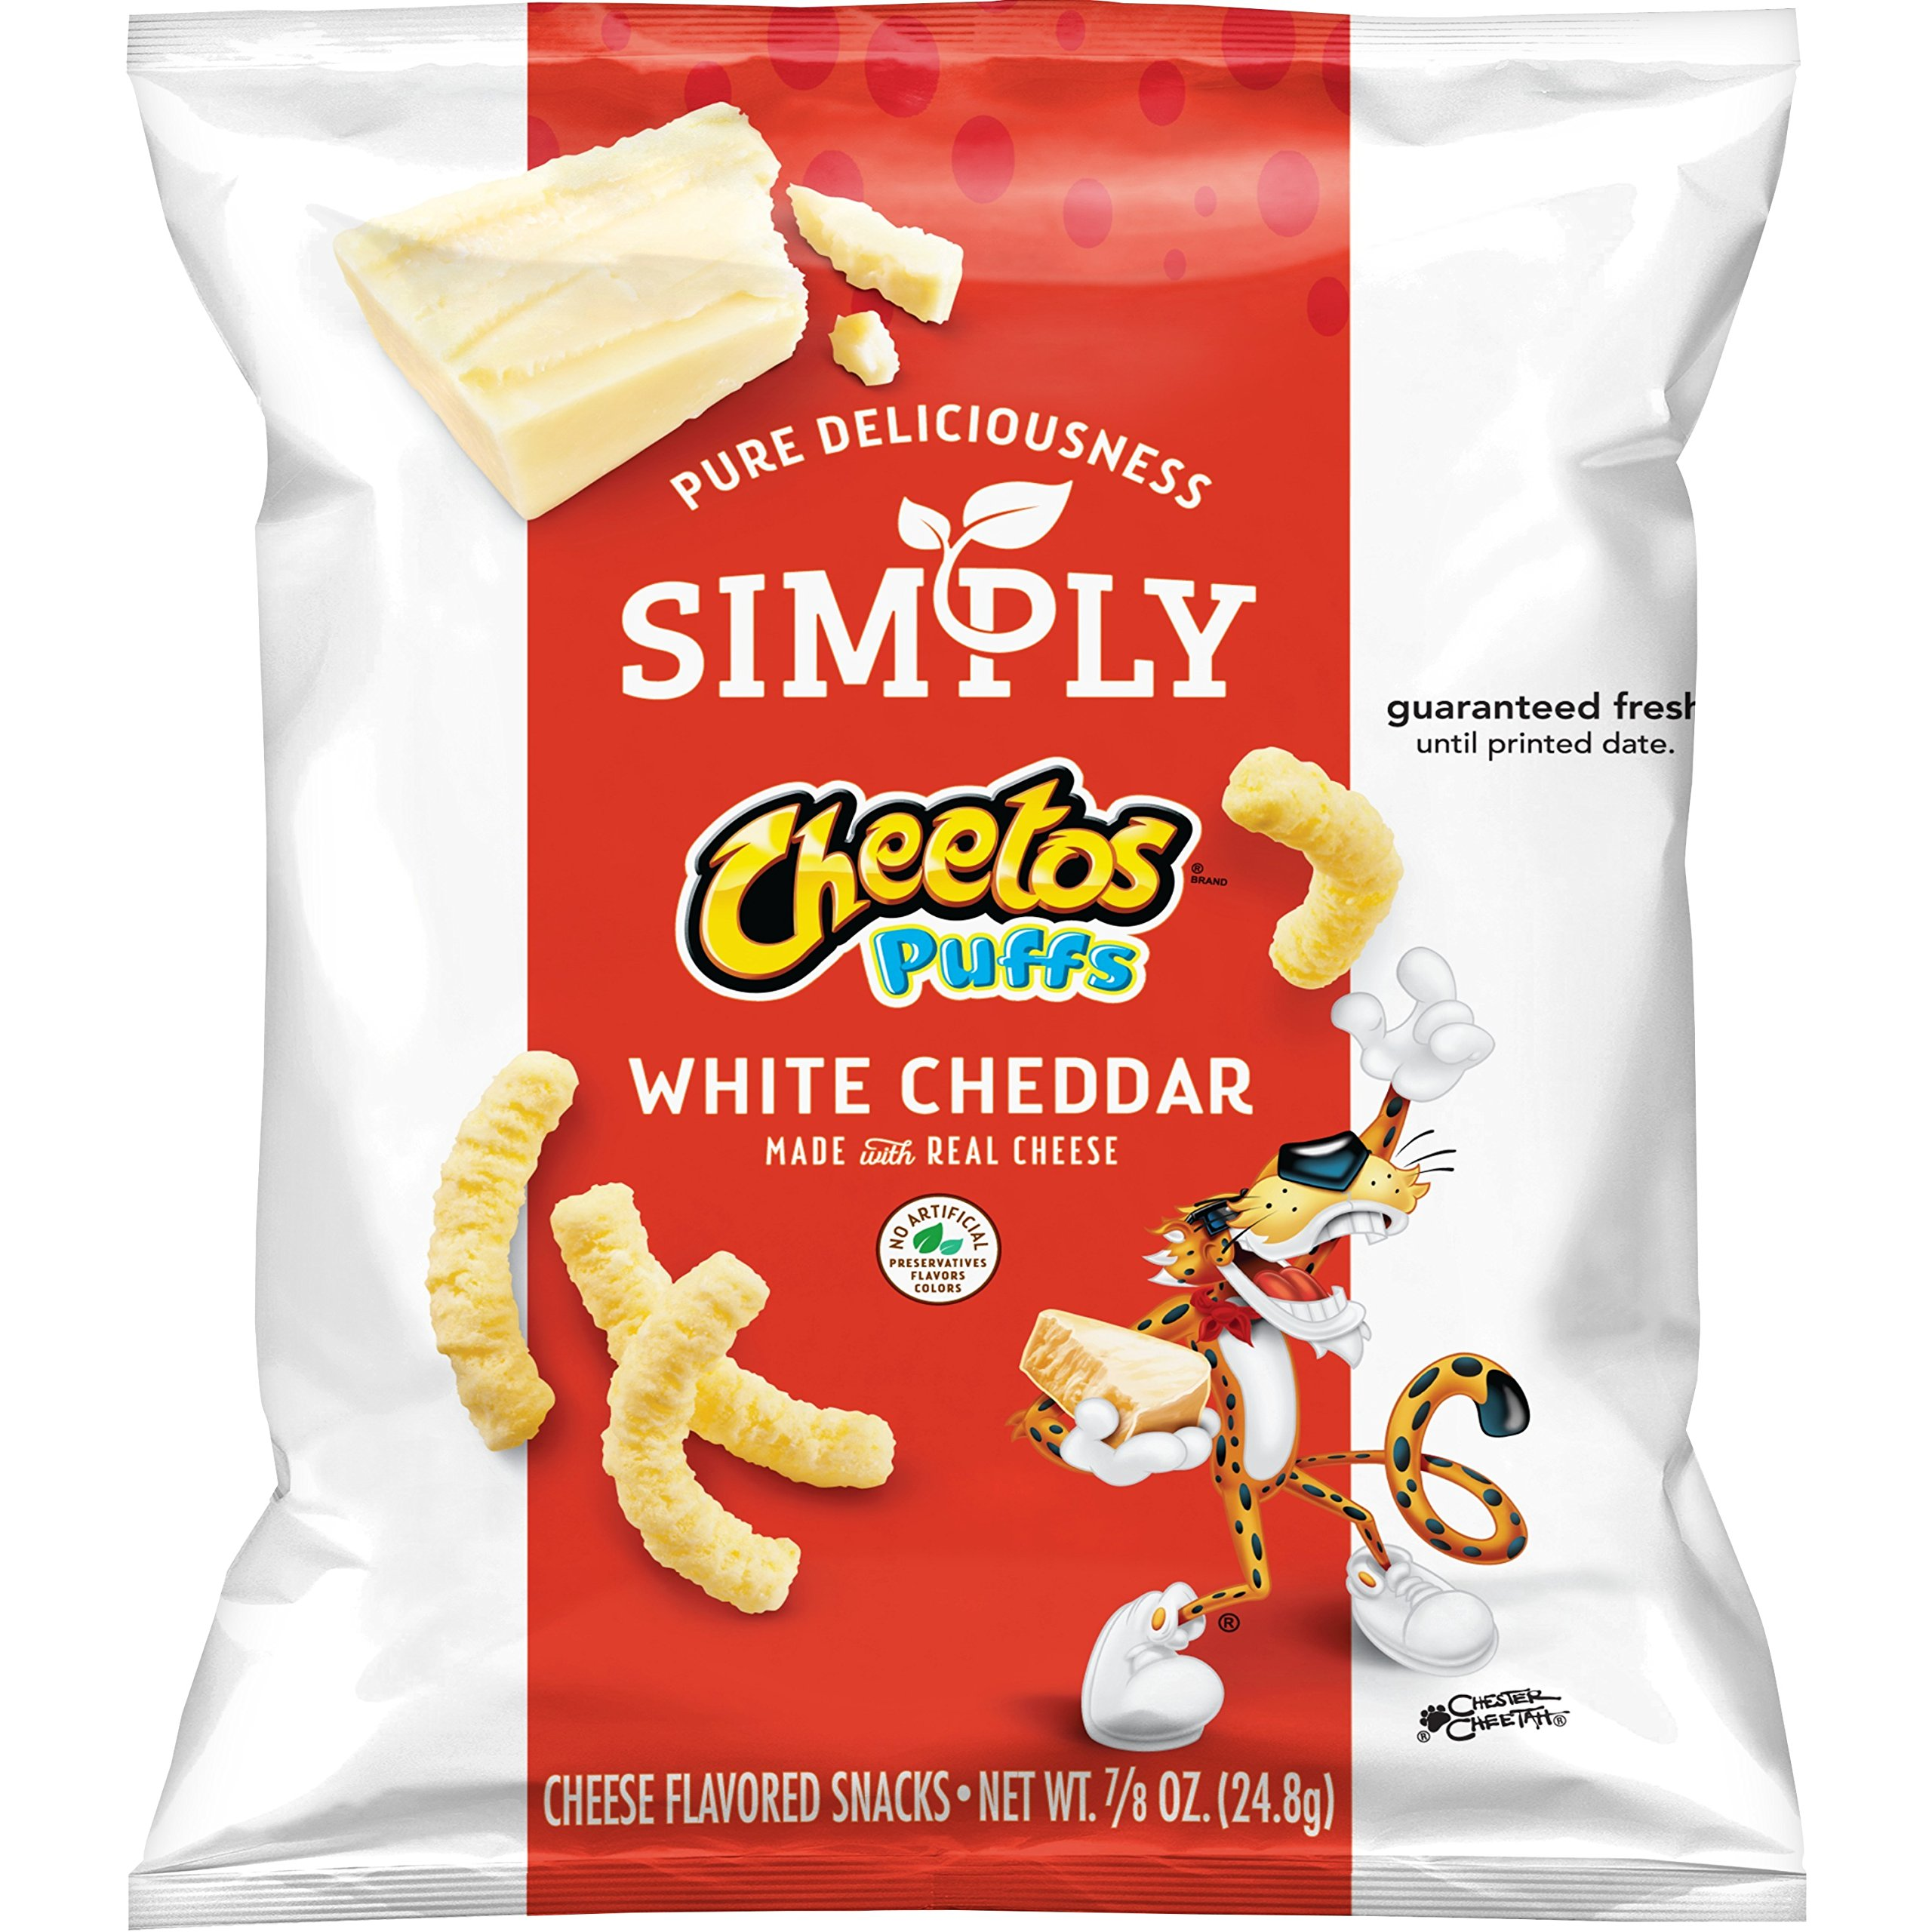 Simply Cheetos Puffs White Cheddar Cheese Flavored Snacks, 36 Count by Simply